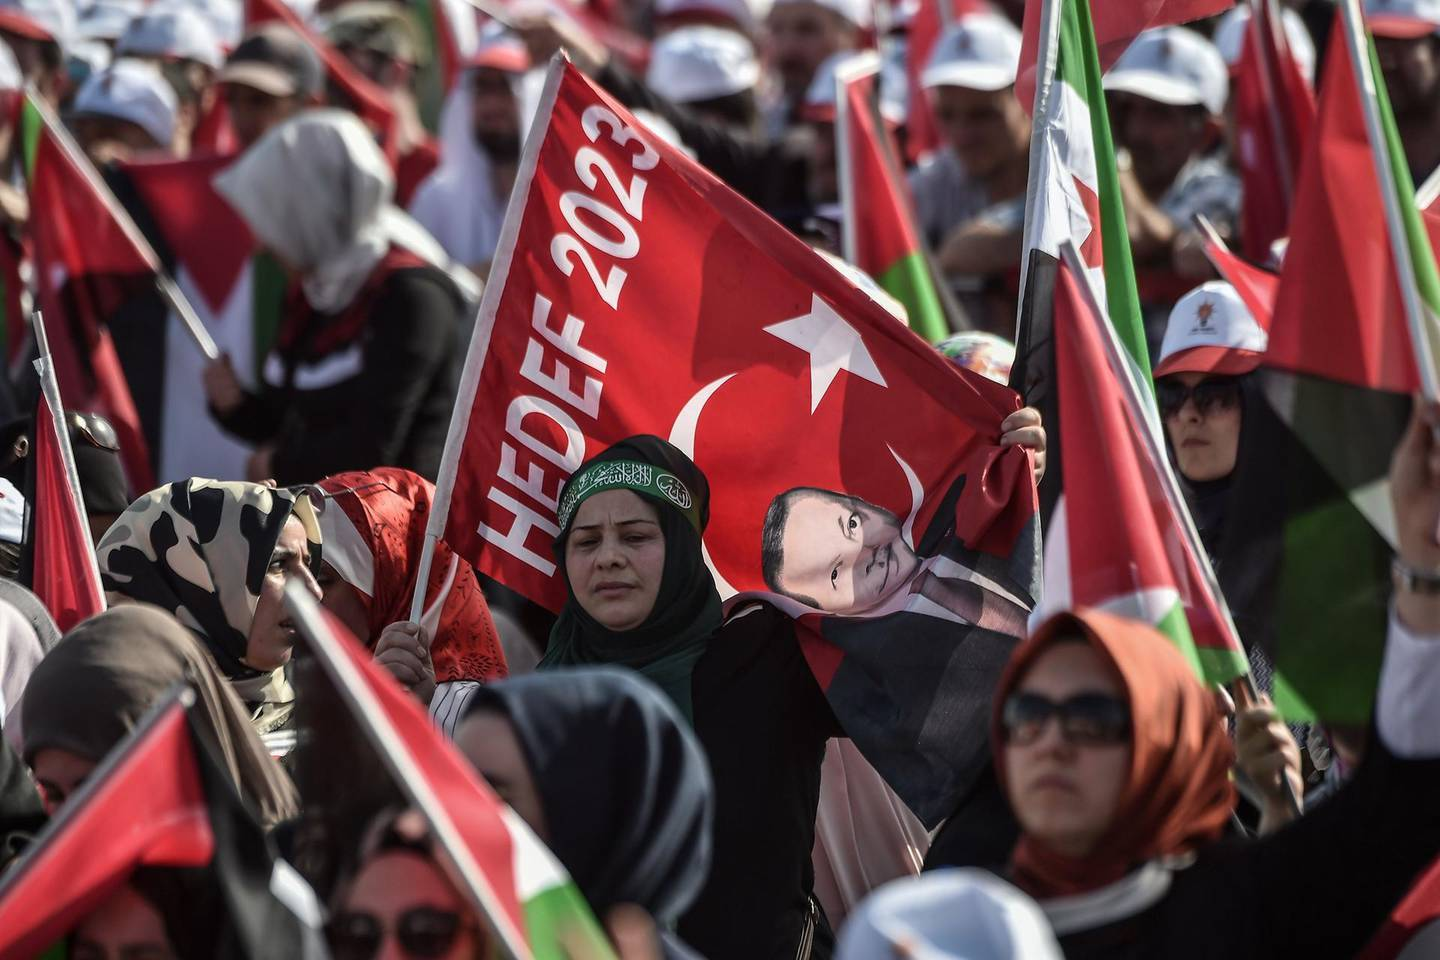 Protesters react as they listen to the speech of the Turkish President during a protest rally in Istanbul on May 18, 2018, against the recent killings of Palestinian protesters on the Gaza-Israel border and the US embassy move to Jerusalem.   -   / AFP / OZAN KOSE